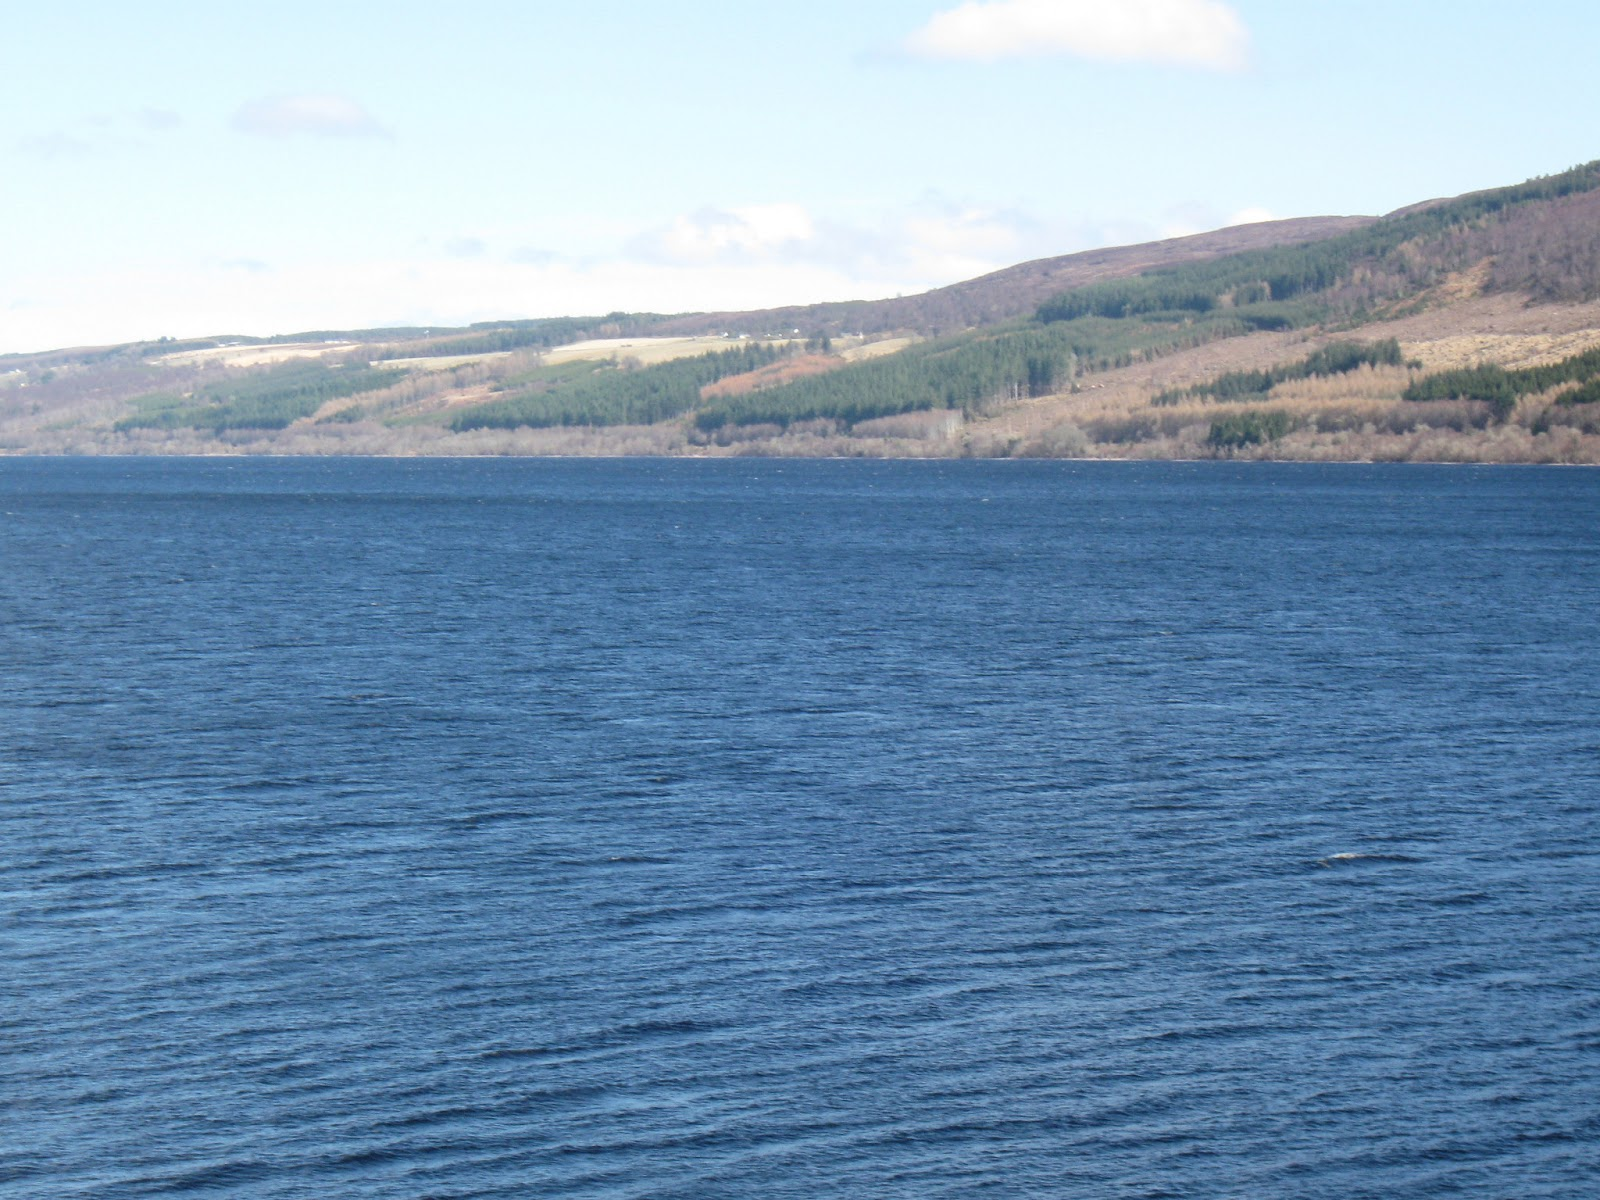 Loch Ness Monster Sightings 2014 That monster hunting was